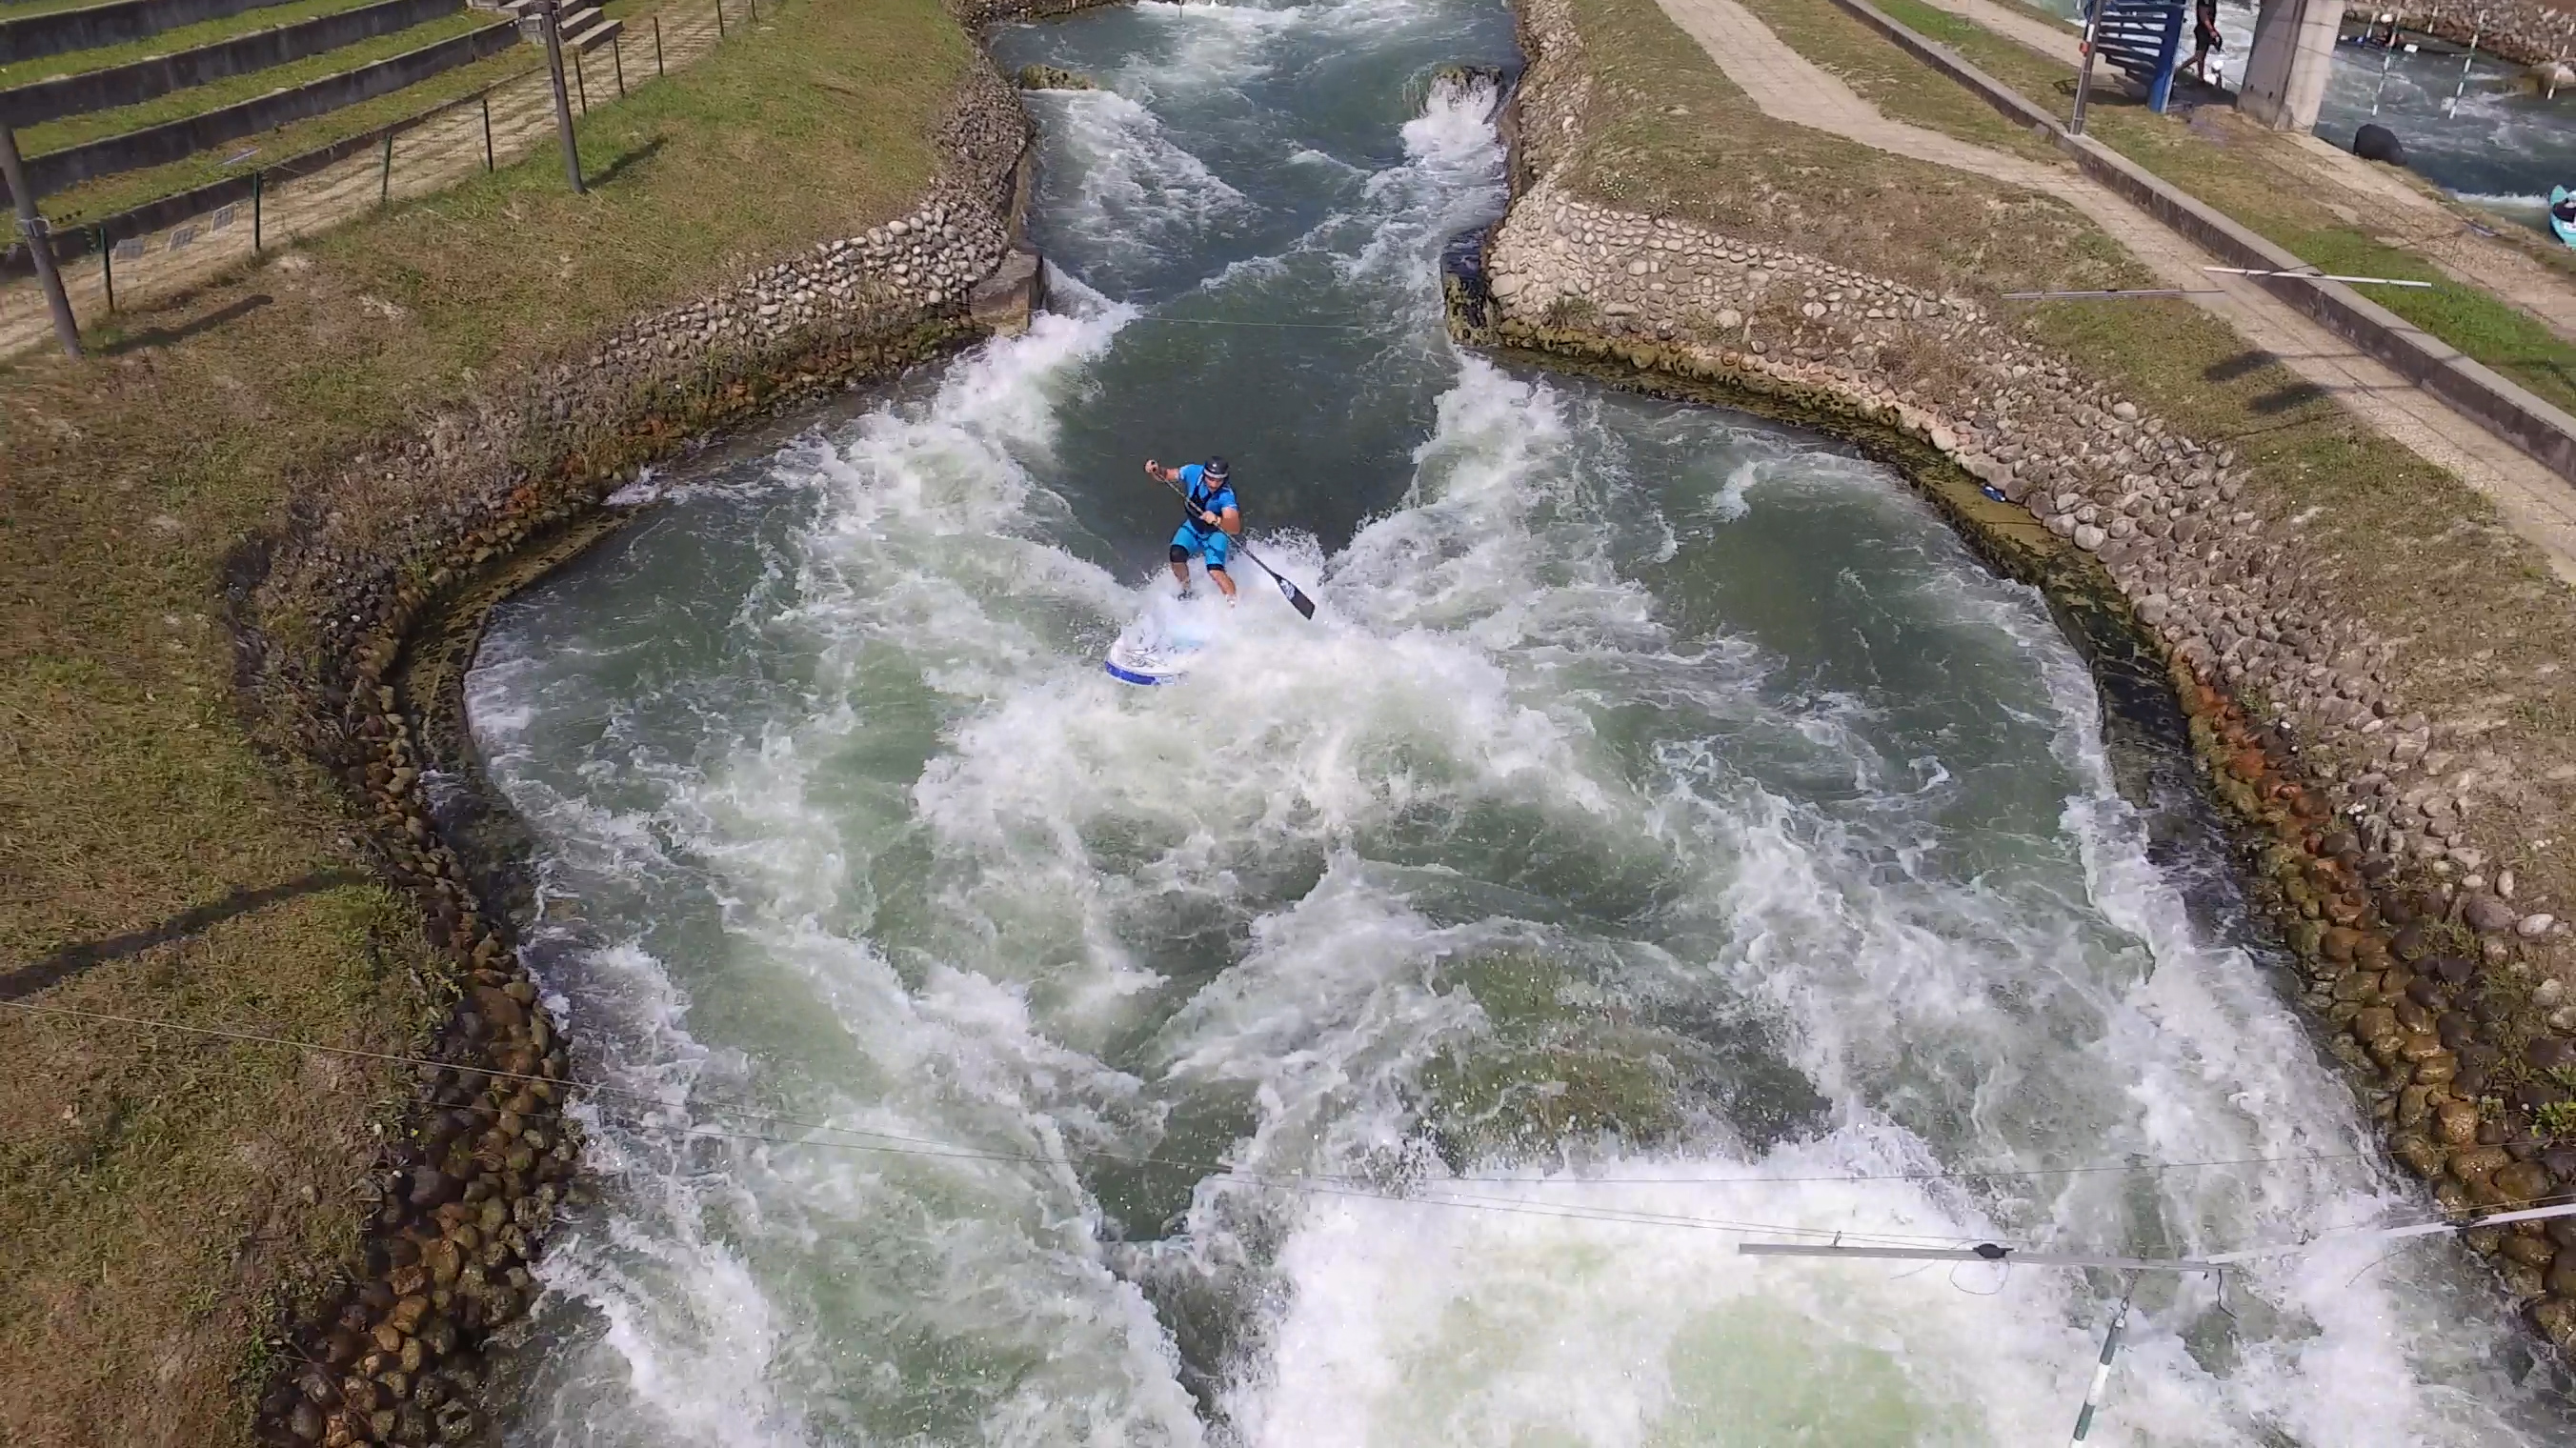 VIDEO: Right variant of slalom course in Cunovo